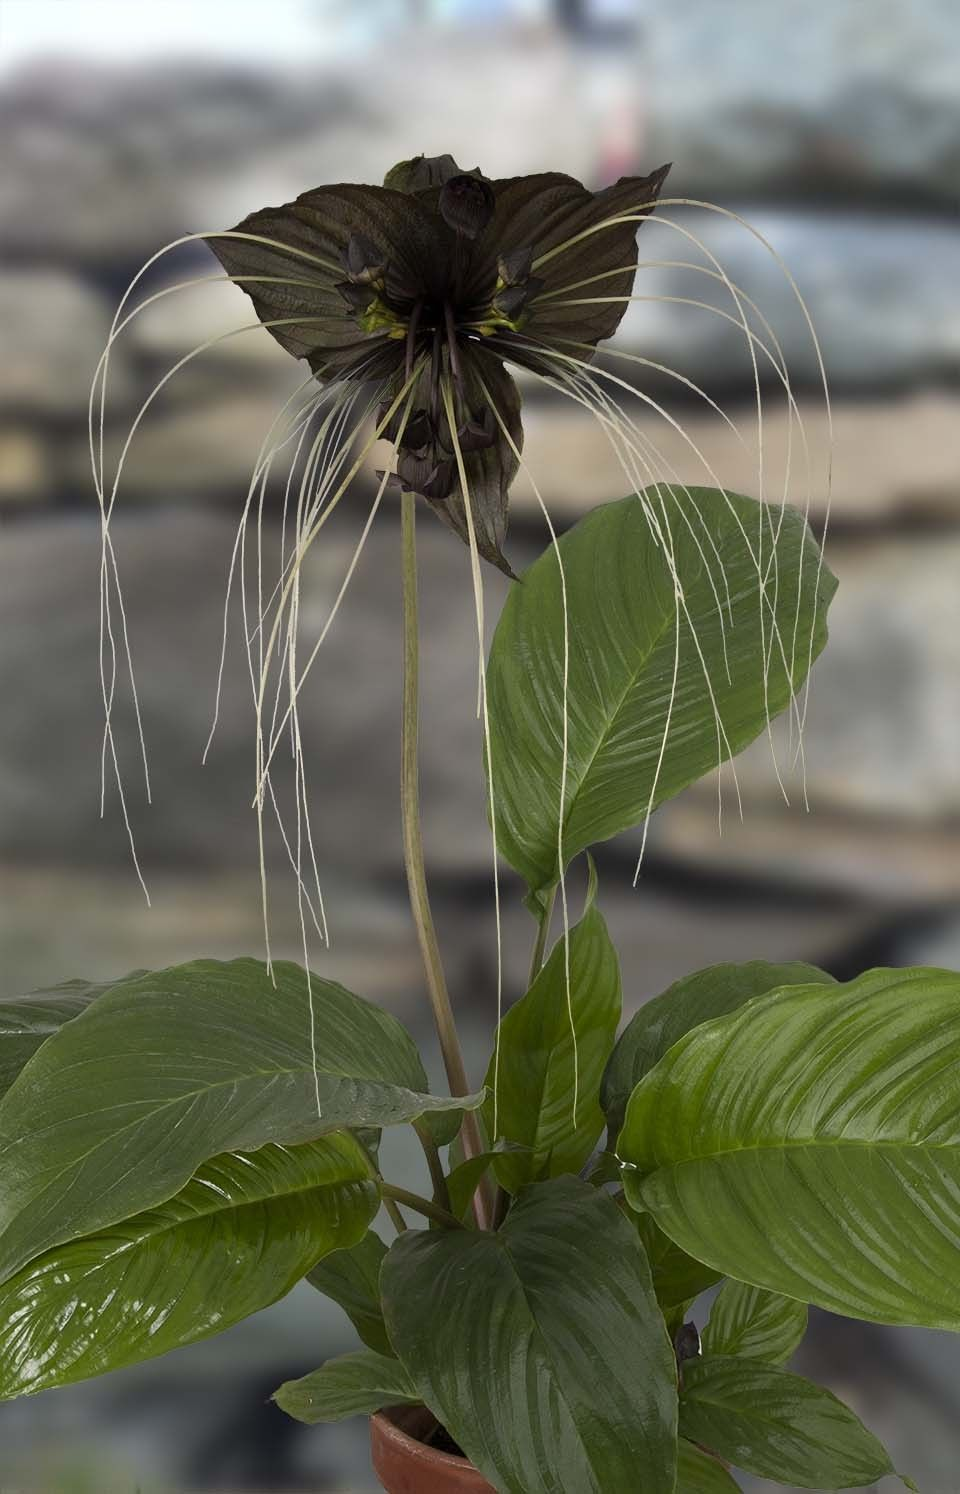 Outdoor flowers that like sun - Black Bat Flower Tacca Chantrieri The Unusual Black Flowers Look Like Bats With Long Cat Whiskers And They Rise Up On Long Stems From The Broad Shiny